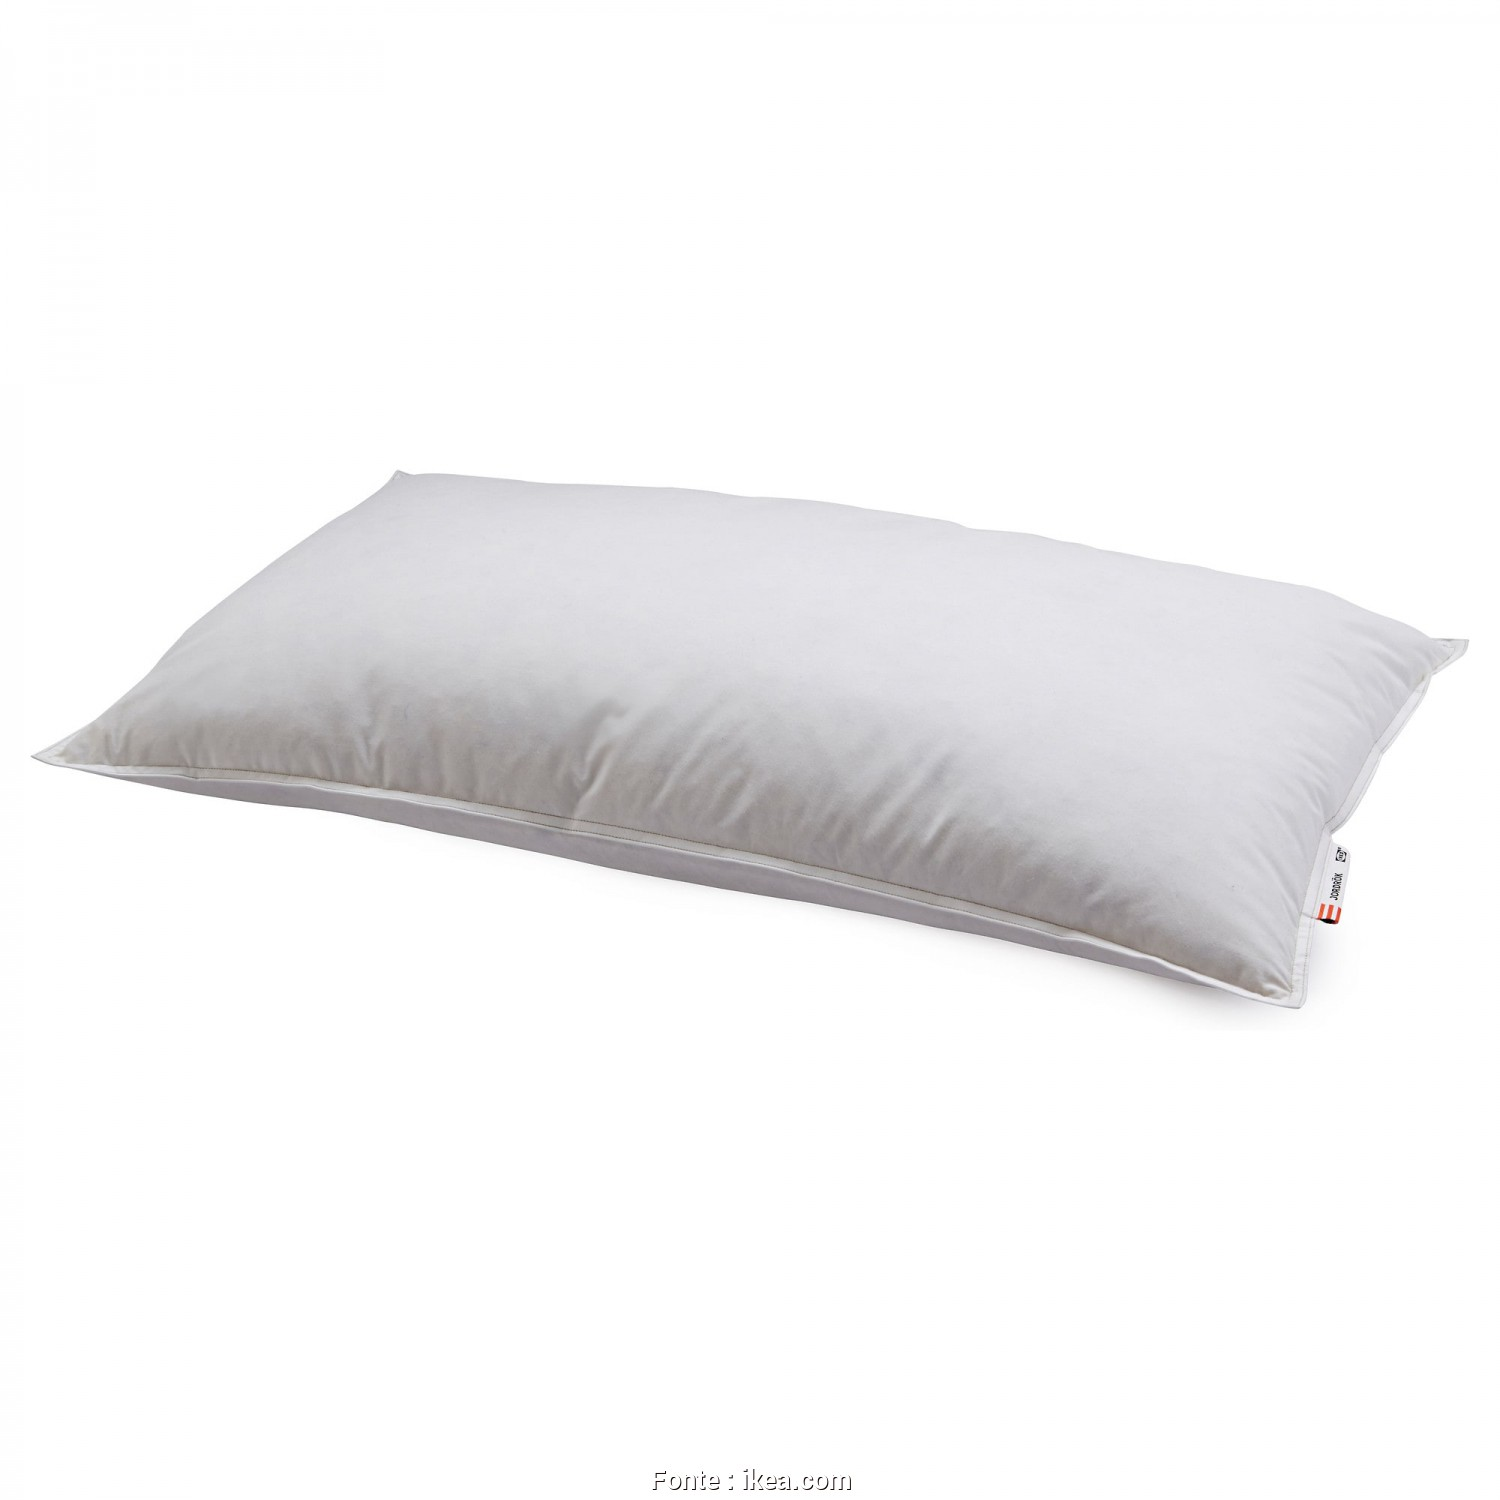 Ikea Cuscino Knavel, Minimalista IKEA JORDRÖK Pillow, Firmer A Firm Pillow In Soft Cotton, Filled With Duck Down